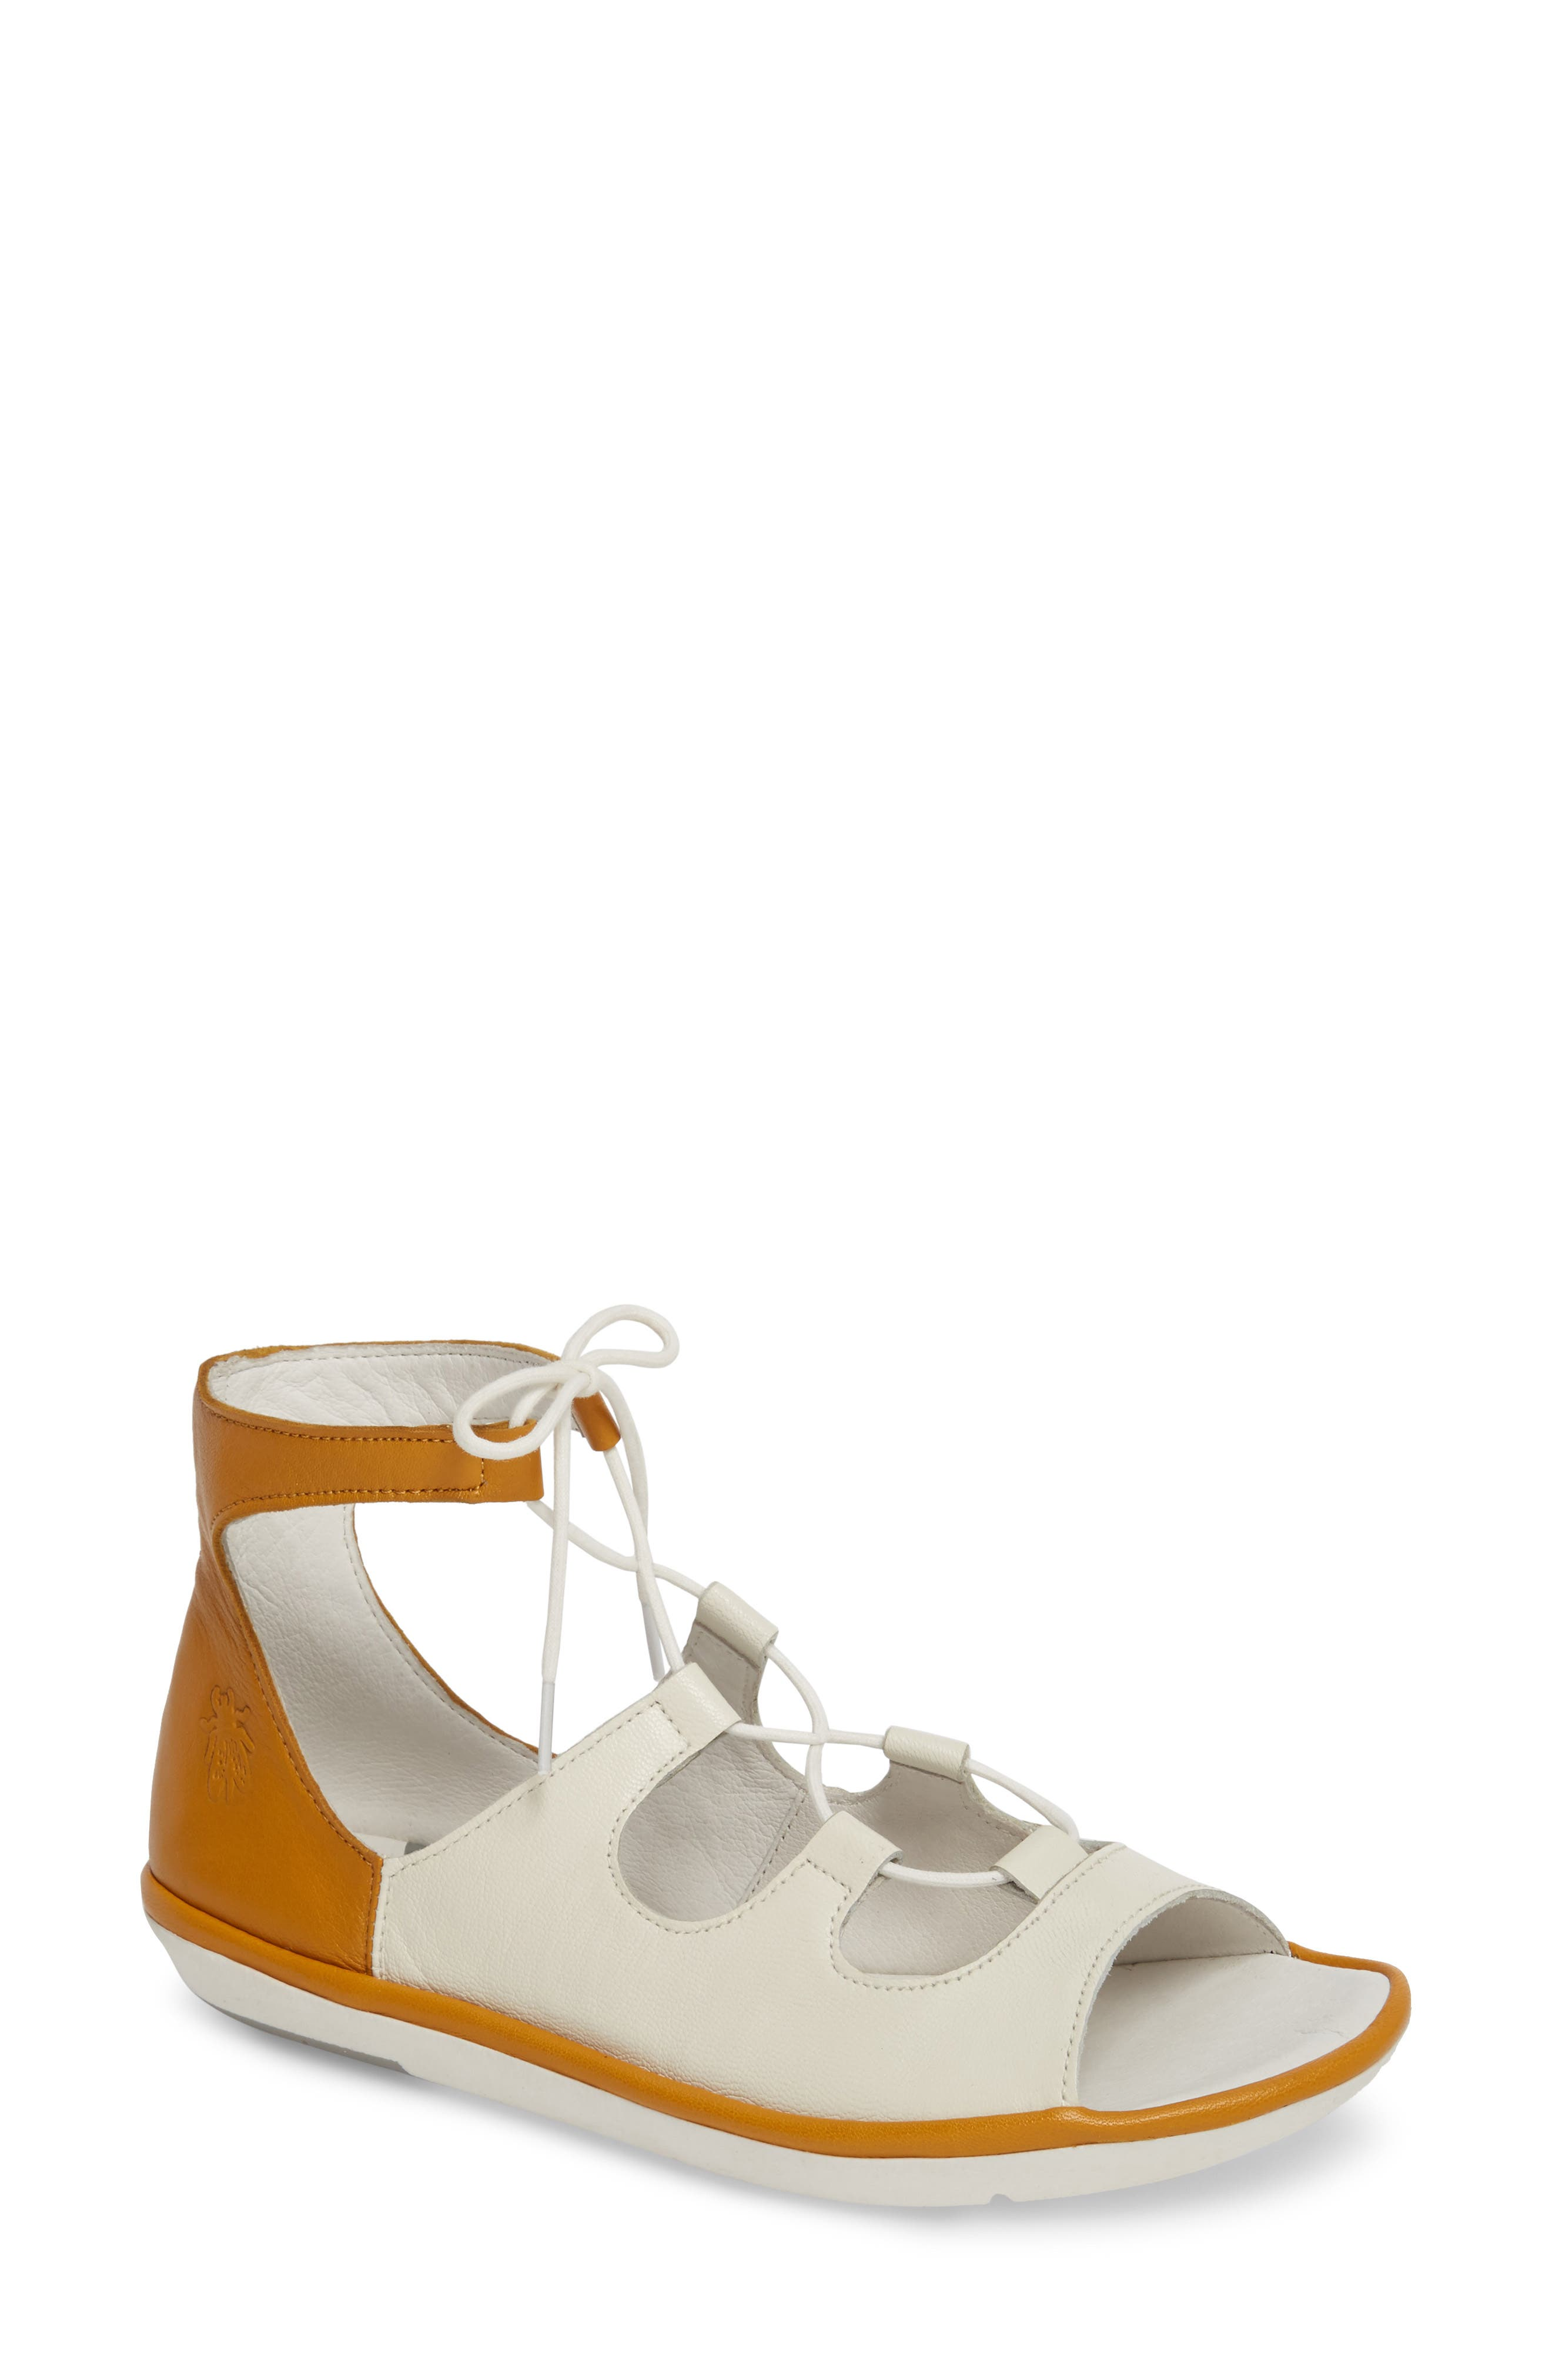 Fly London Mura Ghillie Sandal - White